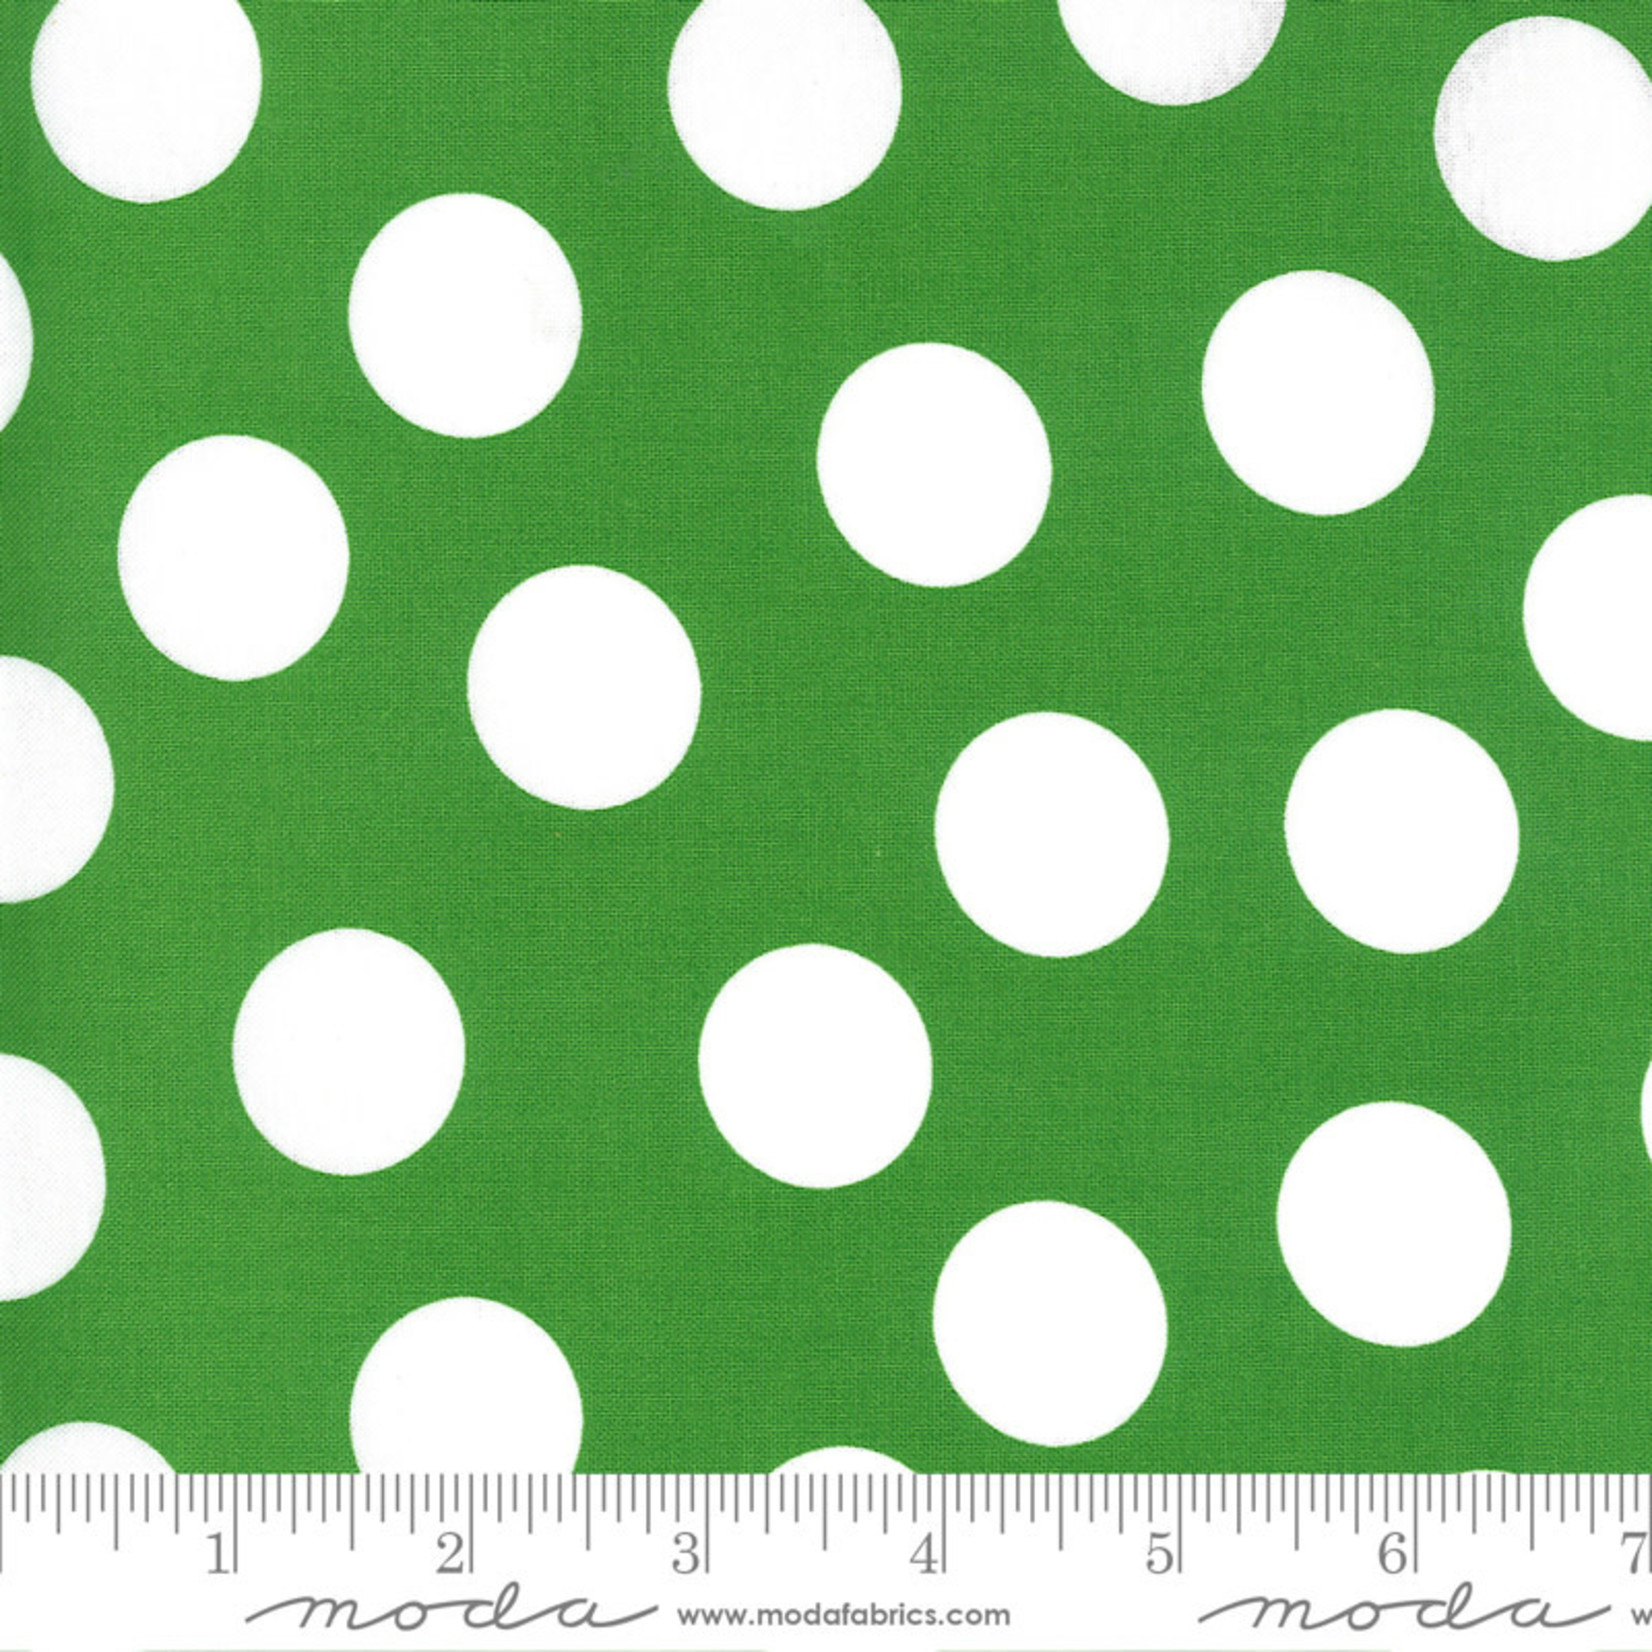 Me and My Sister Designs Merry and Bright, Merry Giant Dot,  Ever Green 22405 12 $0.20 per cm or $20/m